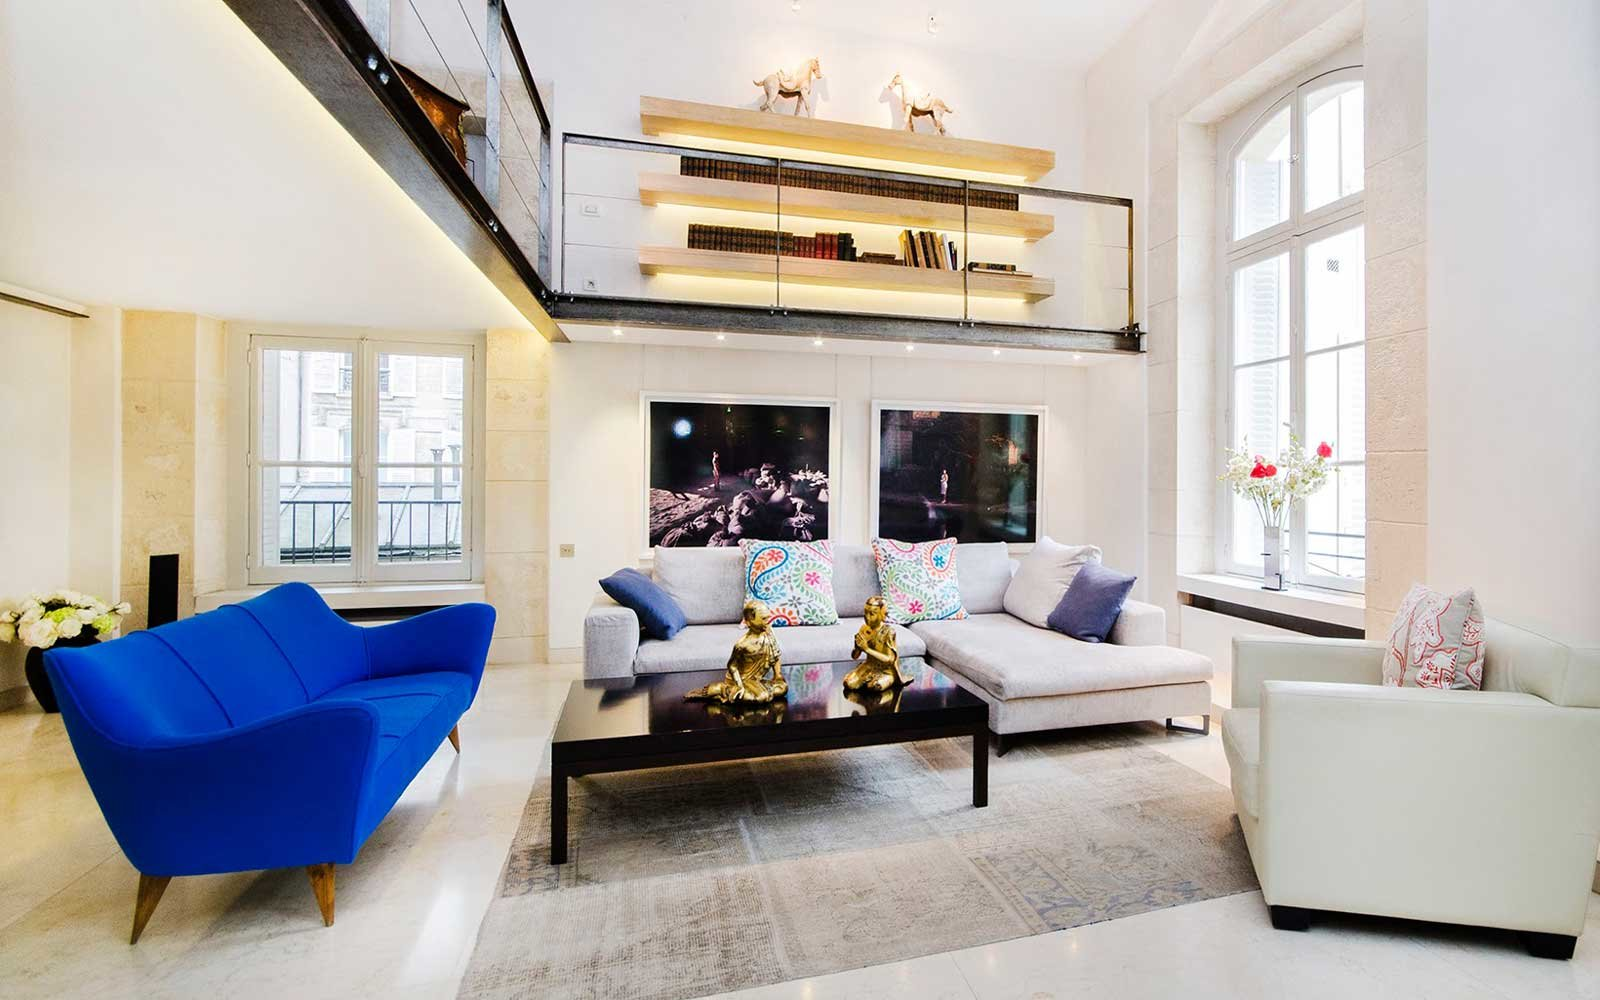 get 30% off a 7-night stay in an apartment in paris | travel + leisure